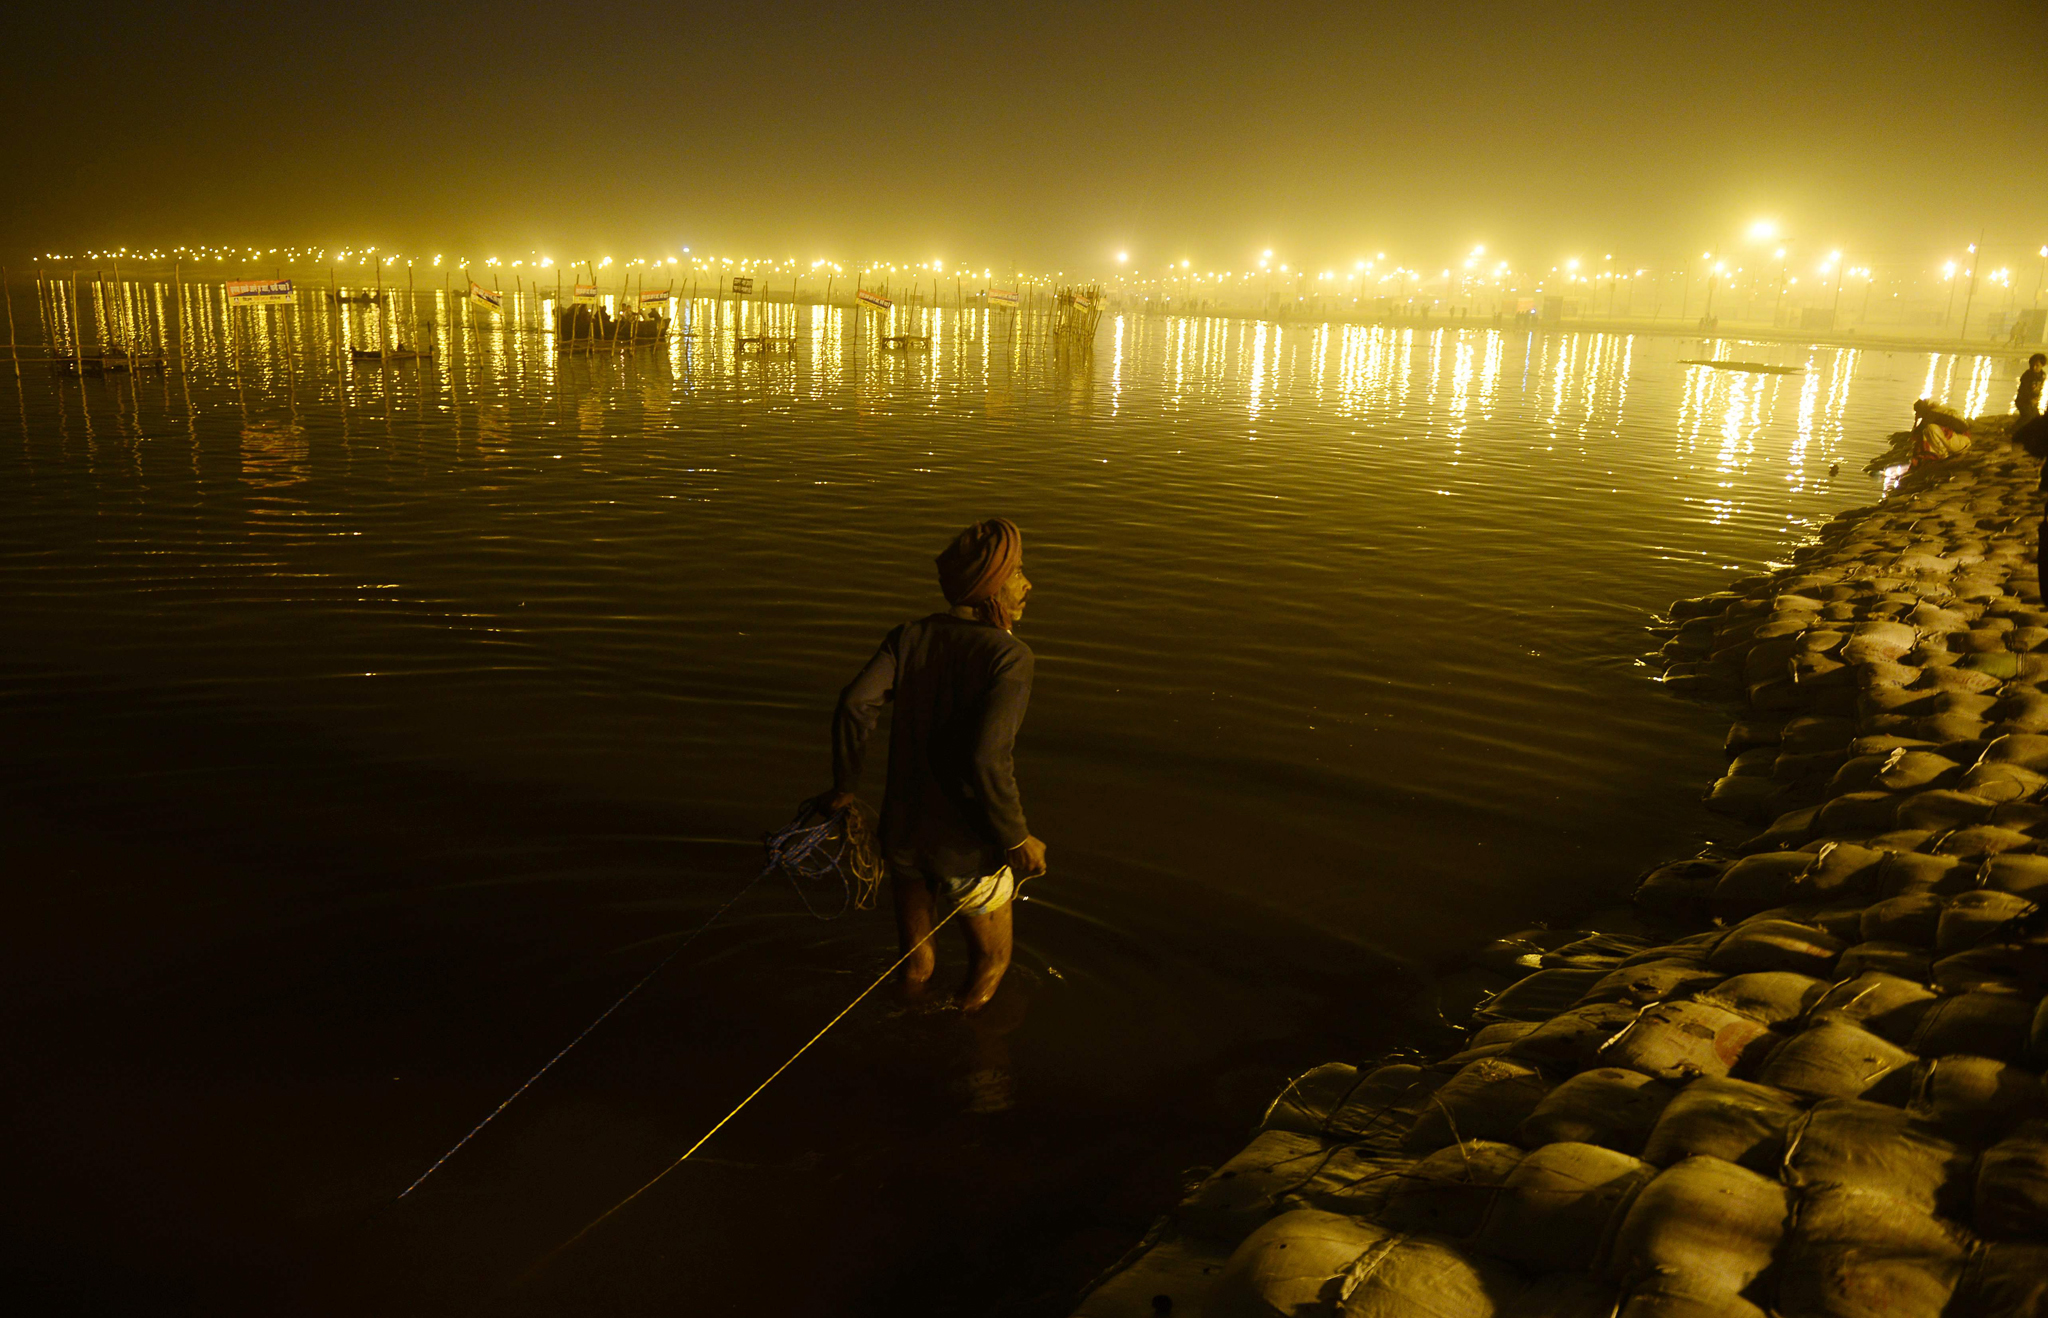 TOPSHOT - An Indian scavenger searches f...TOPSHOT - An Indian scavenger searches for coins offered by Hindu devotees at Sangam during the annual Magh Mela festival in Allahabad on February 5, 2016